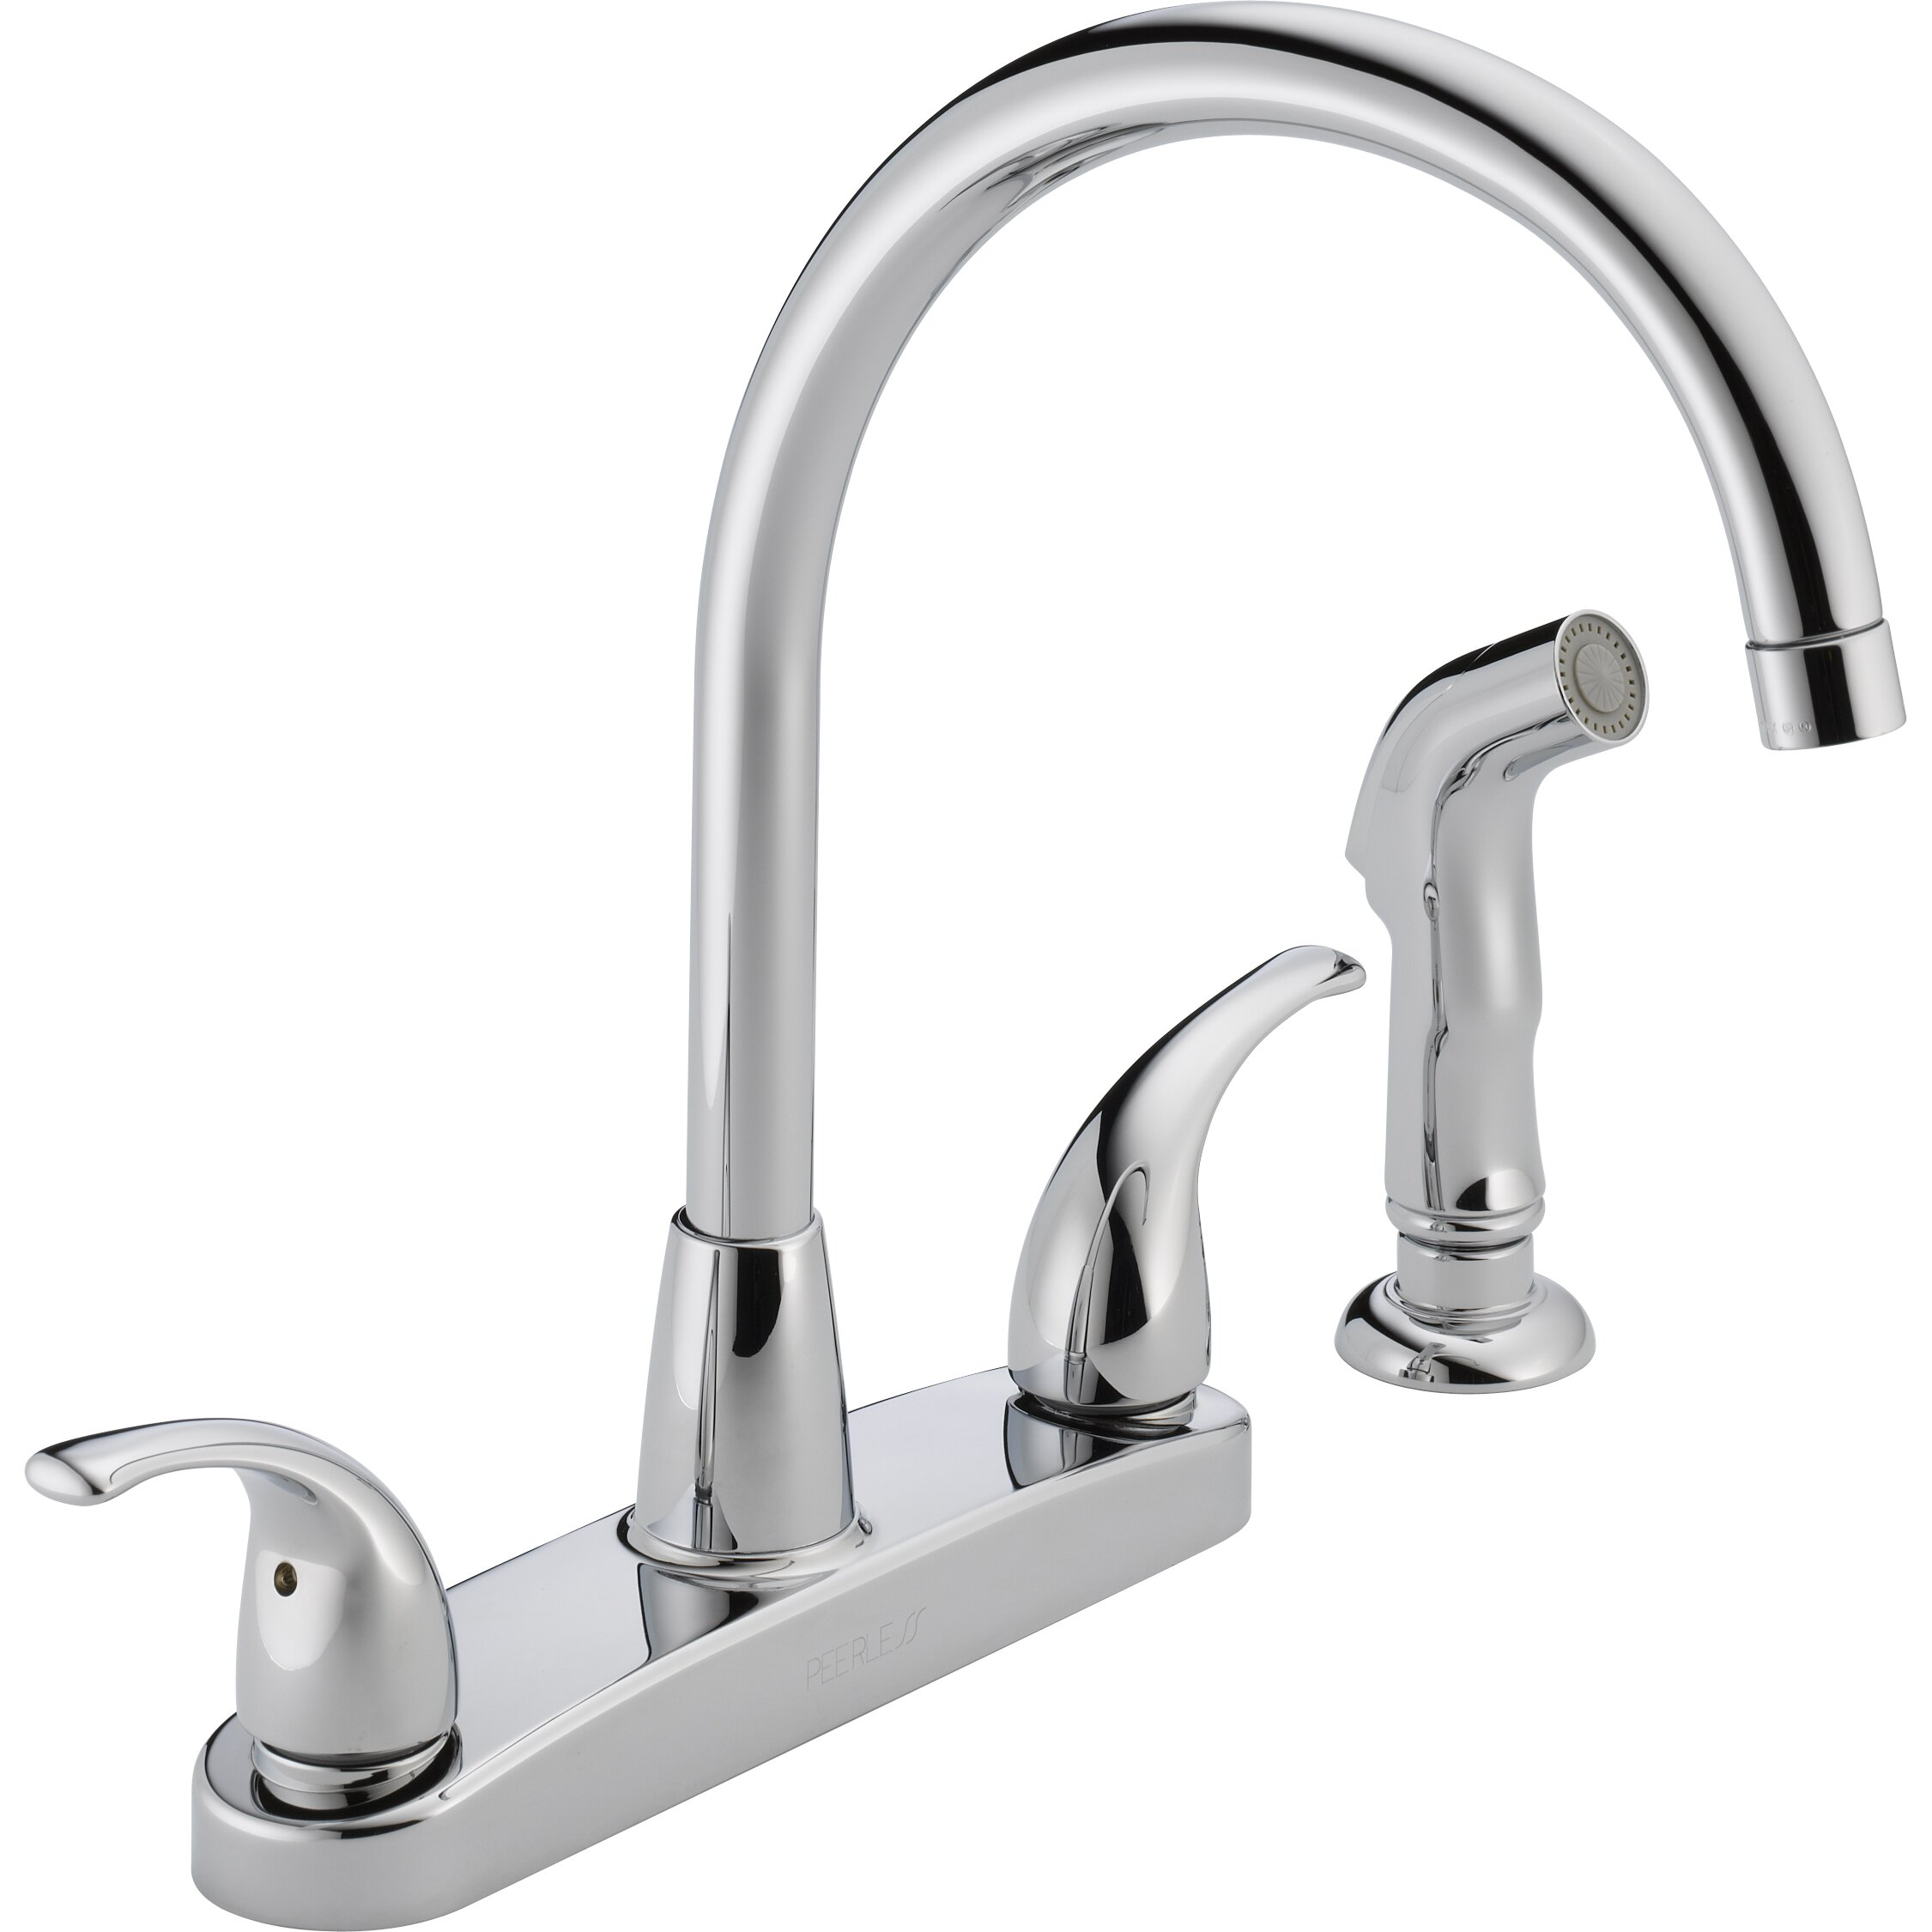 Peerless faucets two handle centerset kitchen faucet with for Handle kitchen set